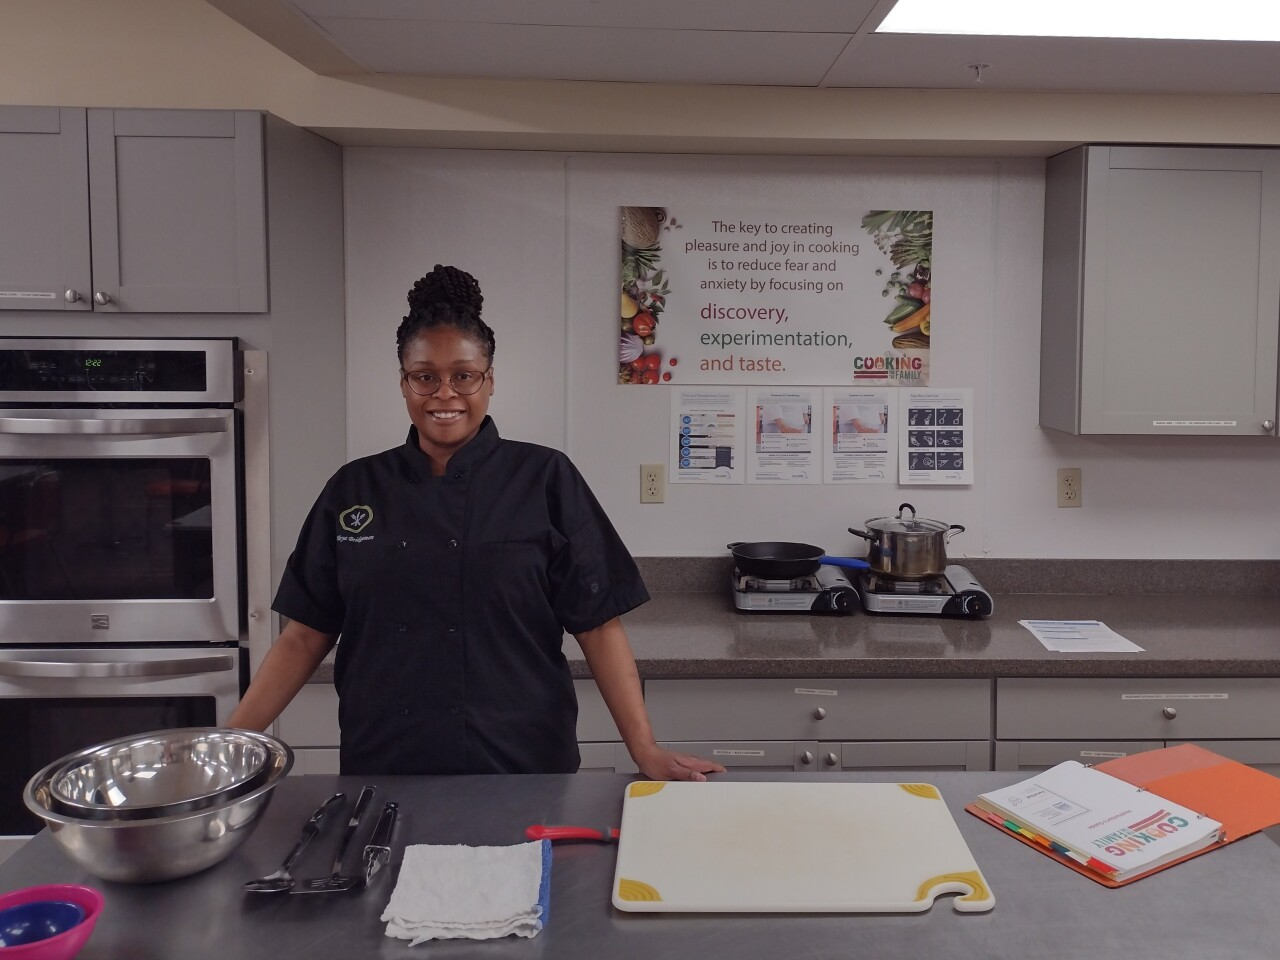 LaToya Bridgeman in the Cooking for the Family Teaching Kitchen at St. Anthony Center in Over-the-Rhine. Bridgeman is smiling and wearing glasses and a black chef coat.